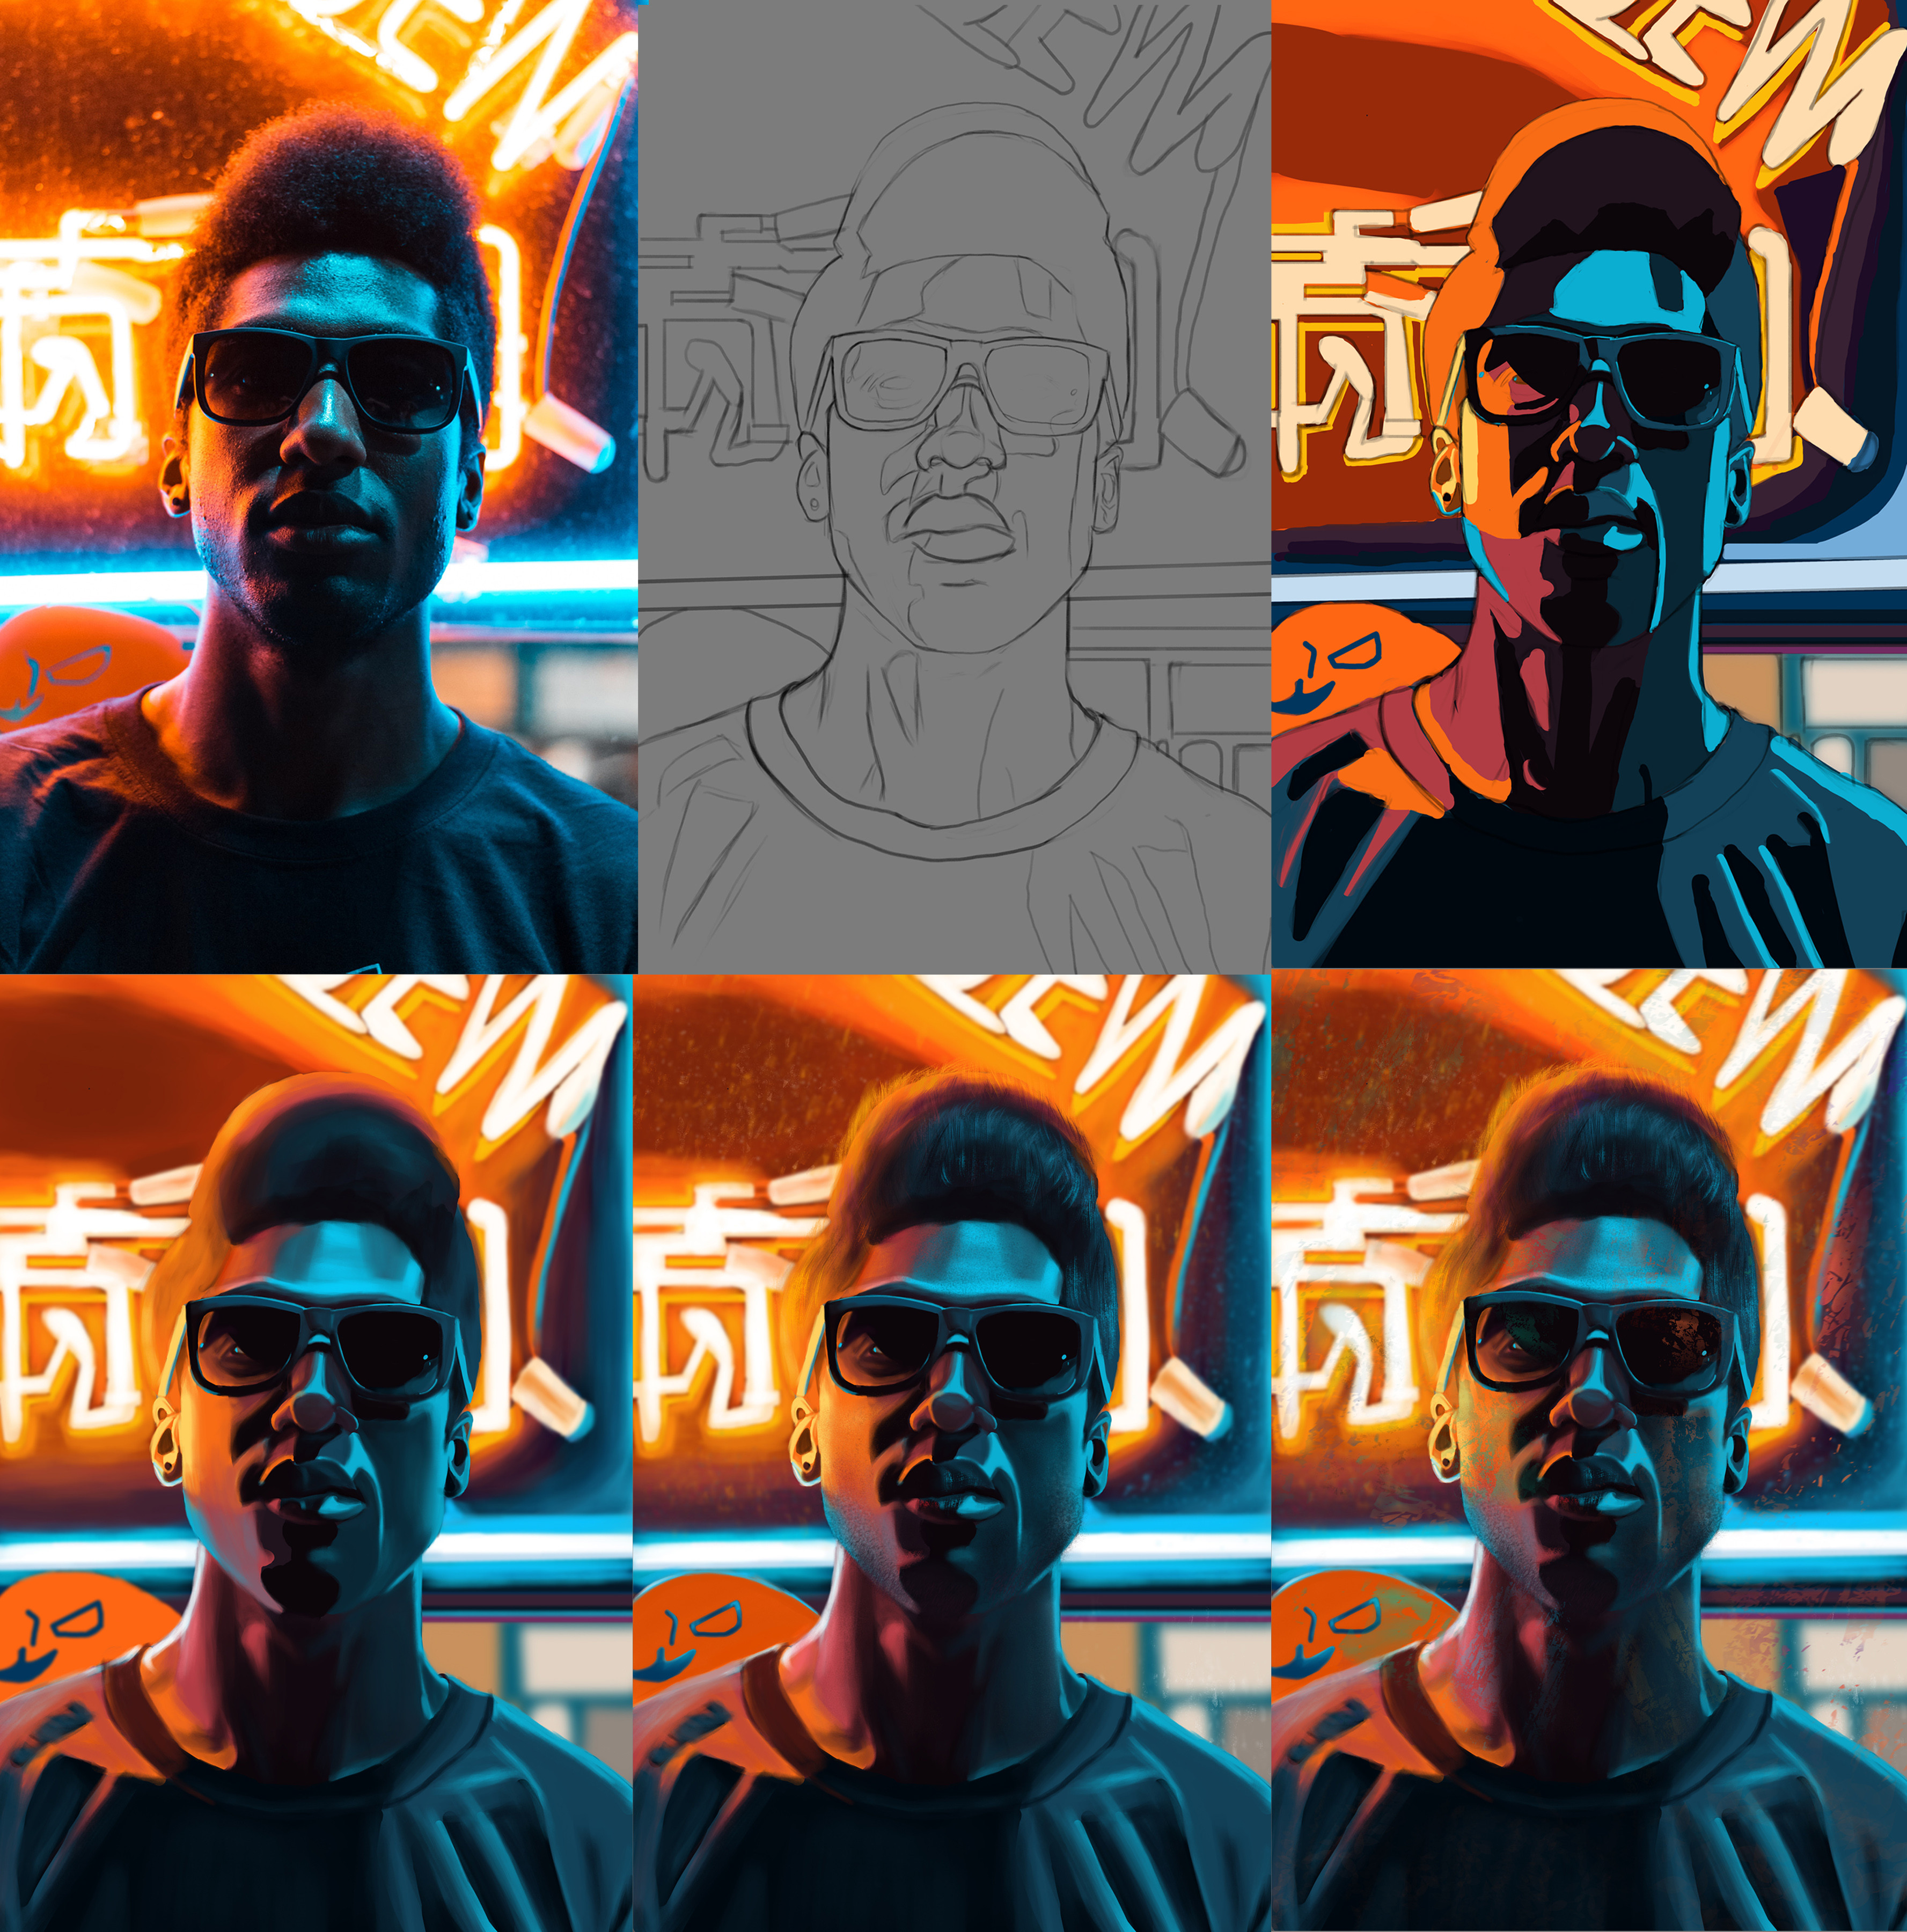 Portrait Process from reference to final